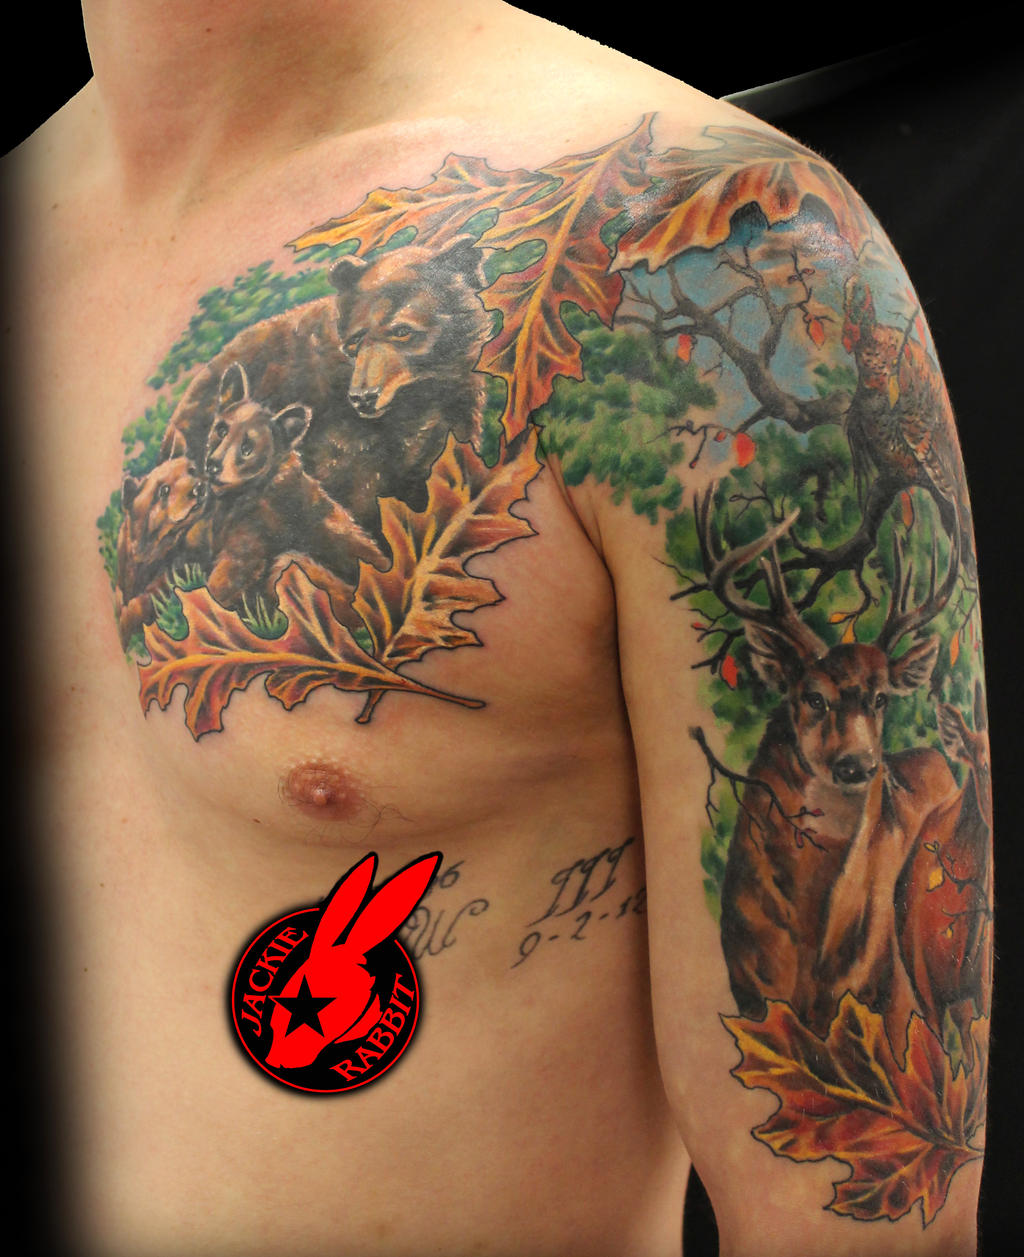 outdoor wildlife hunting tattoo by jackie rabbit by